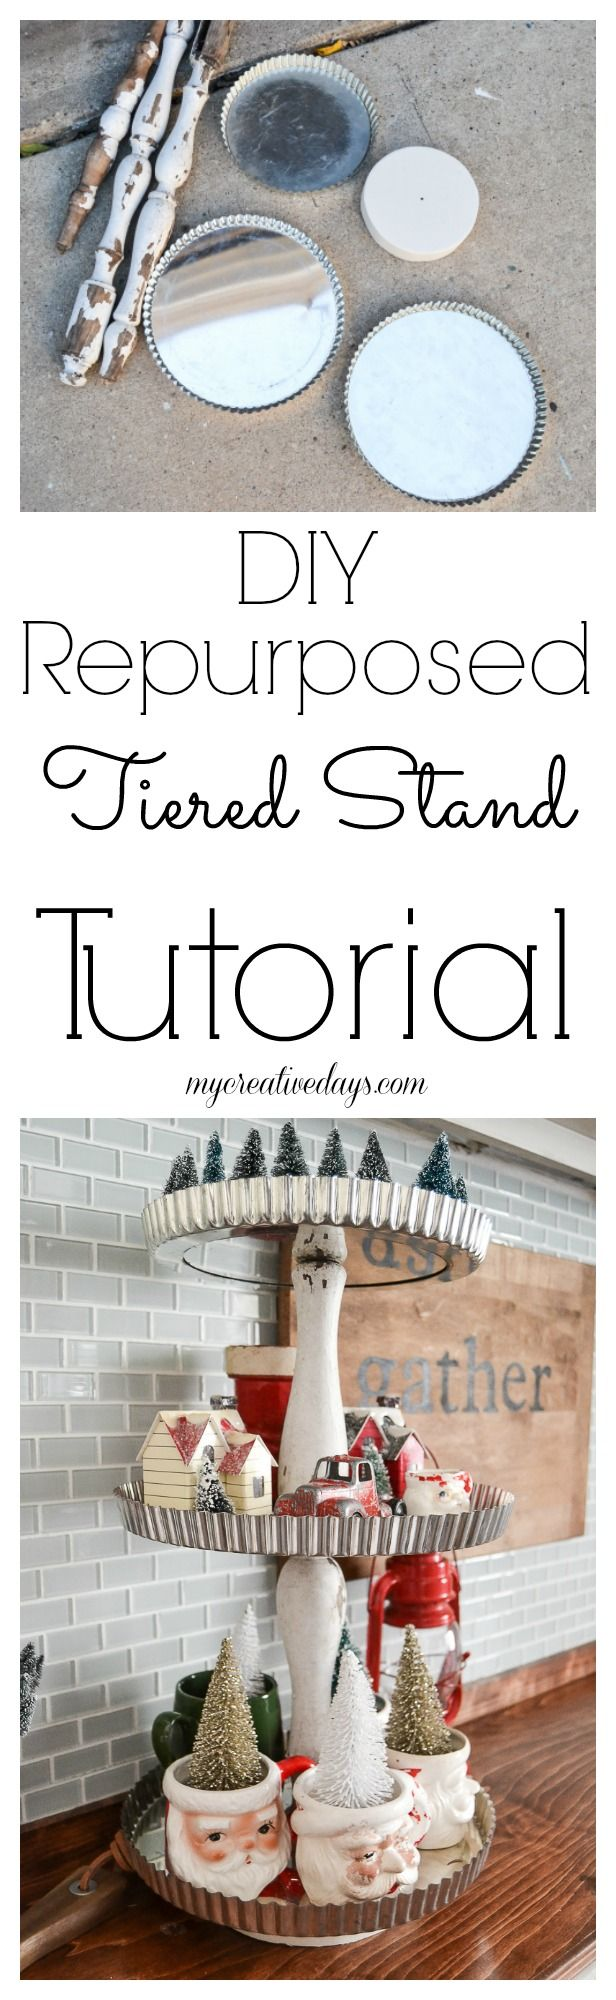 DIY Tiered Stand Tutorial - Make a tiered stand from pie tart pans!